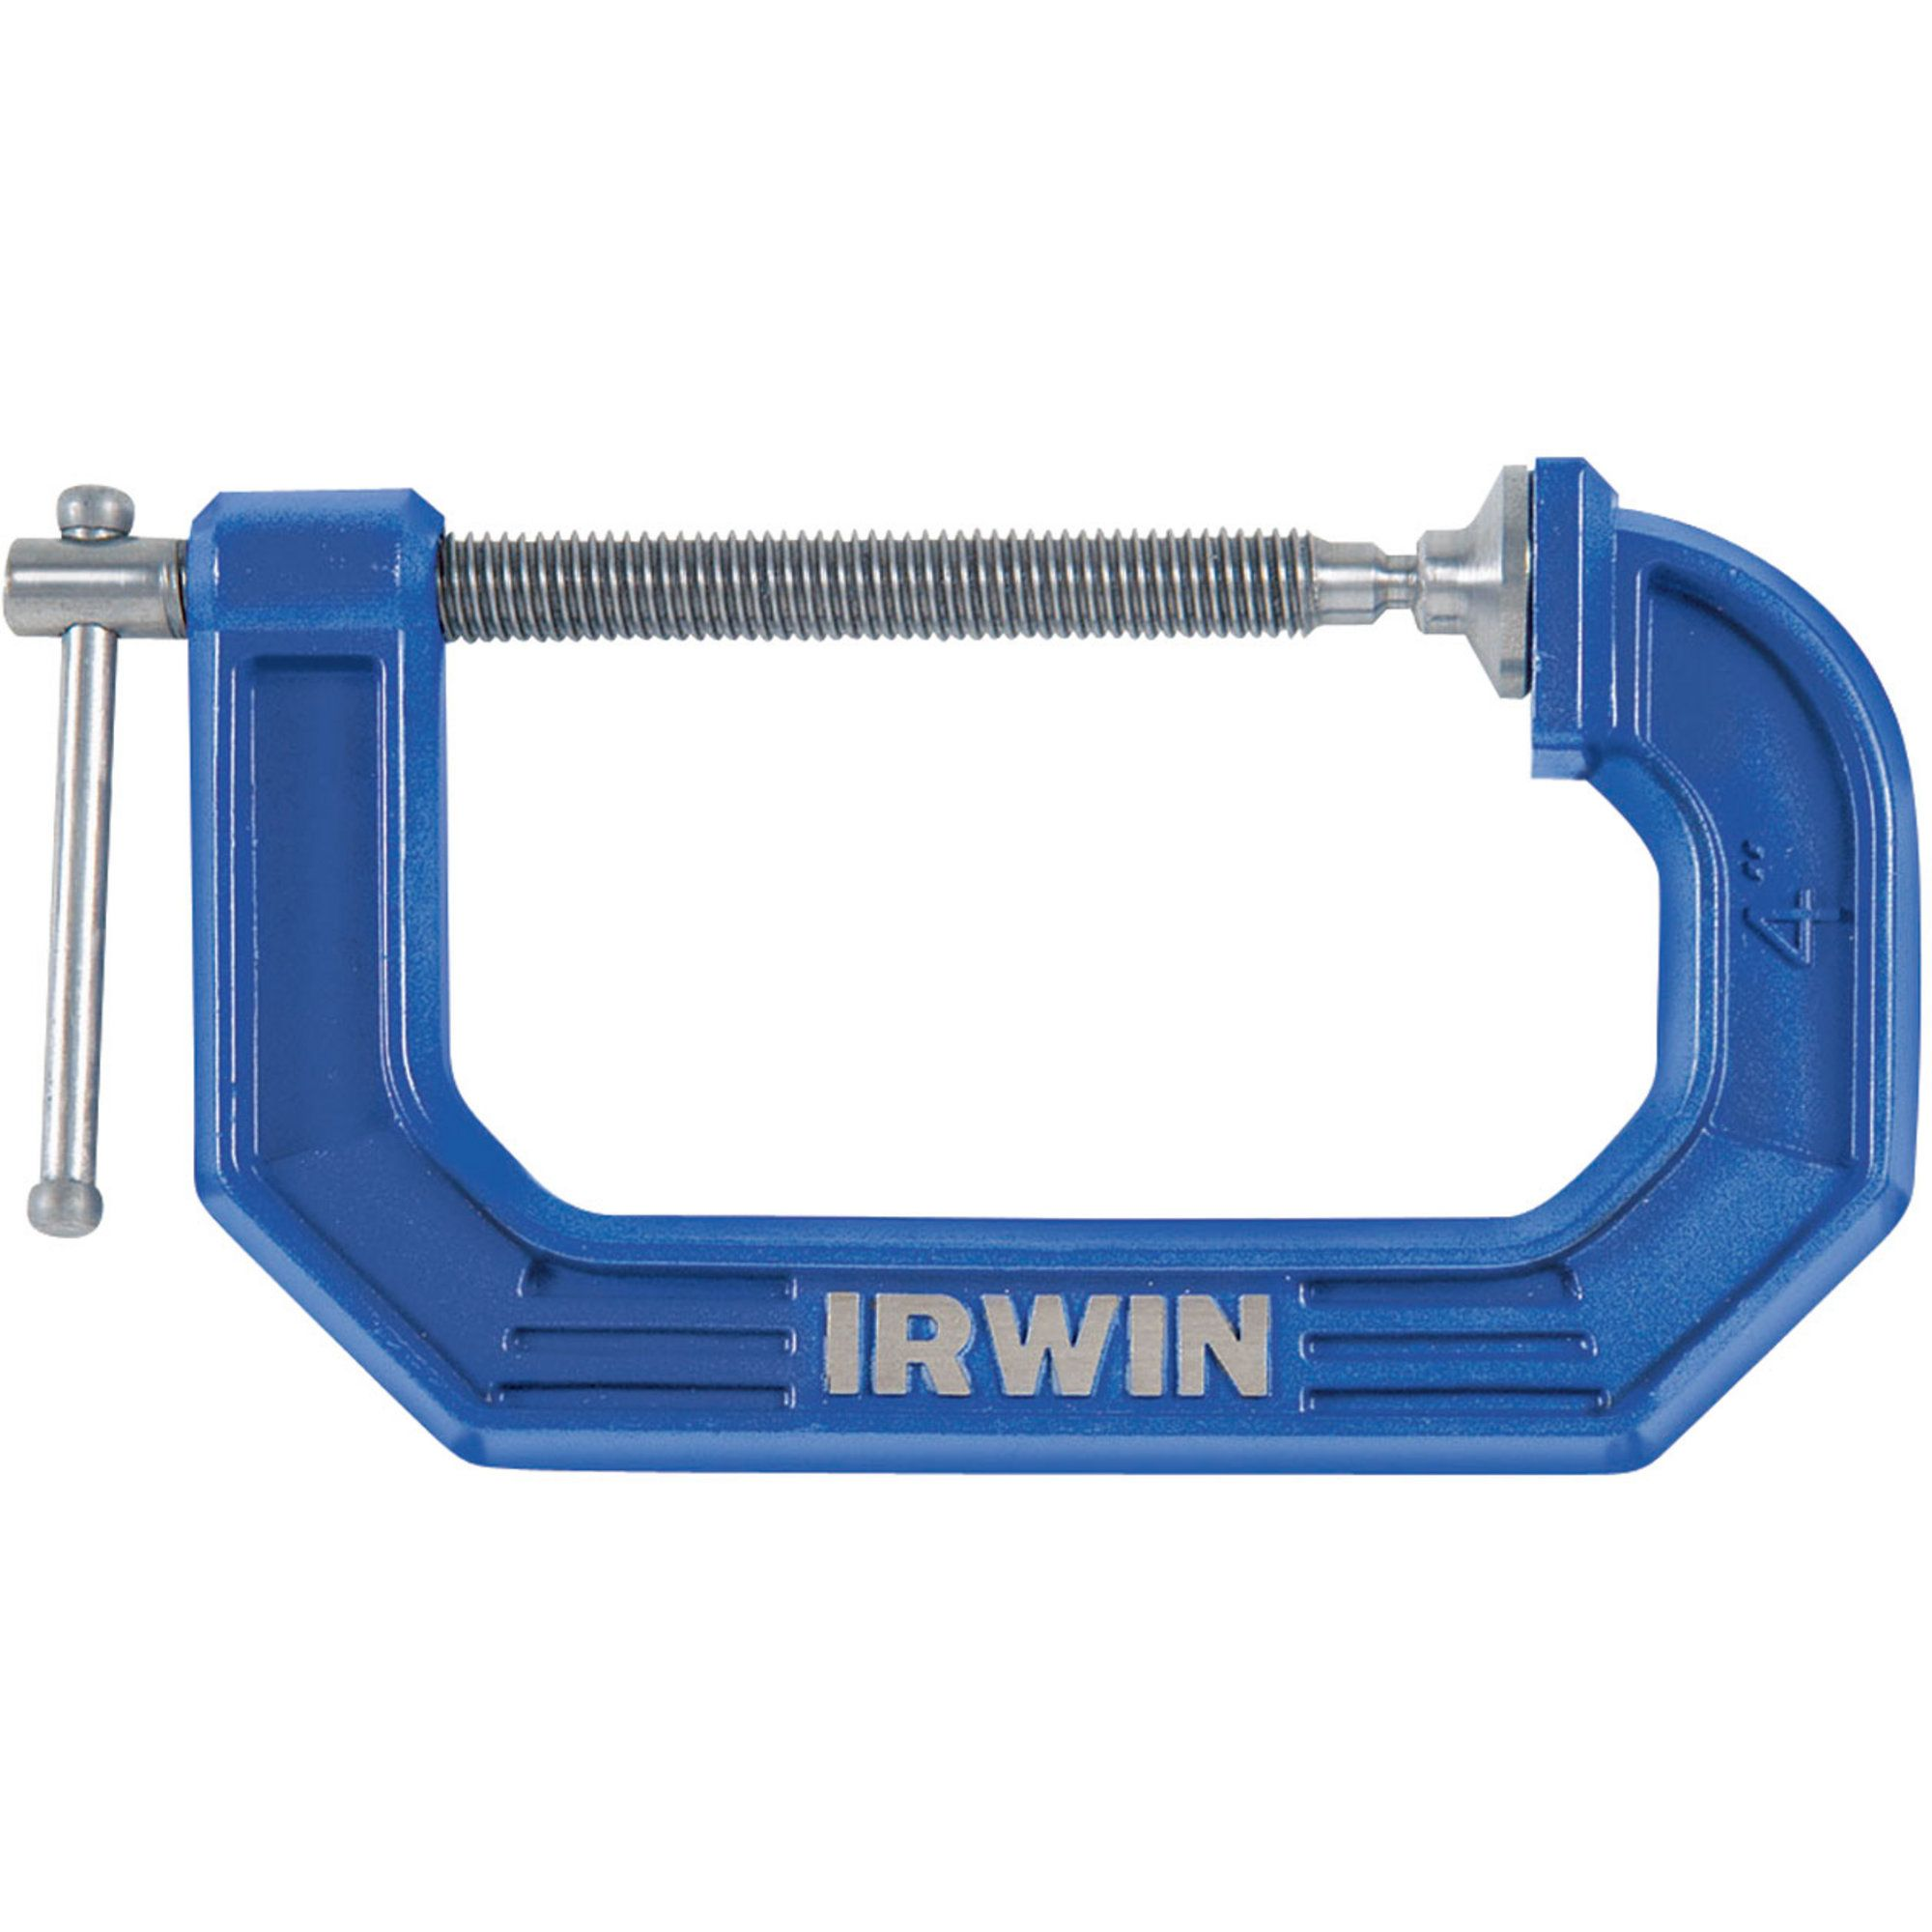 Irwin Quick Grip C Clamp 4in Instrument